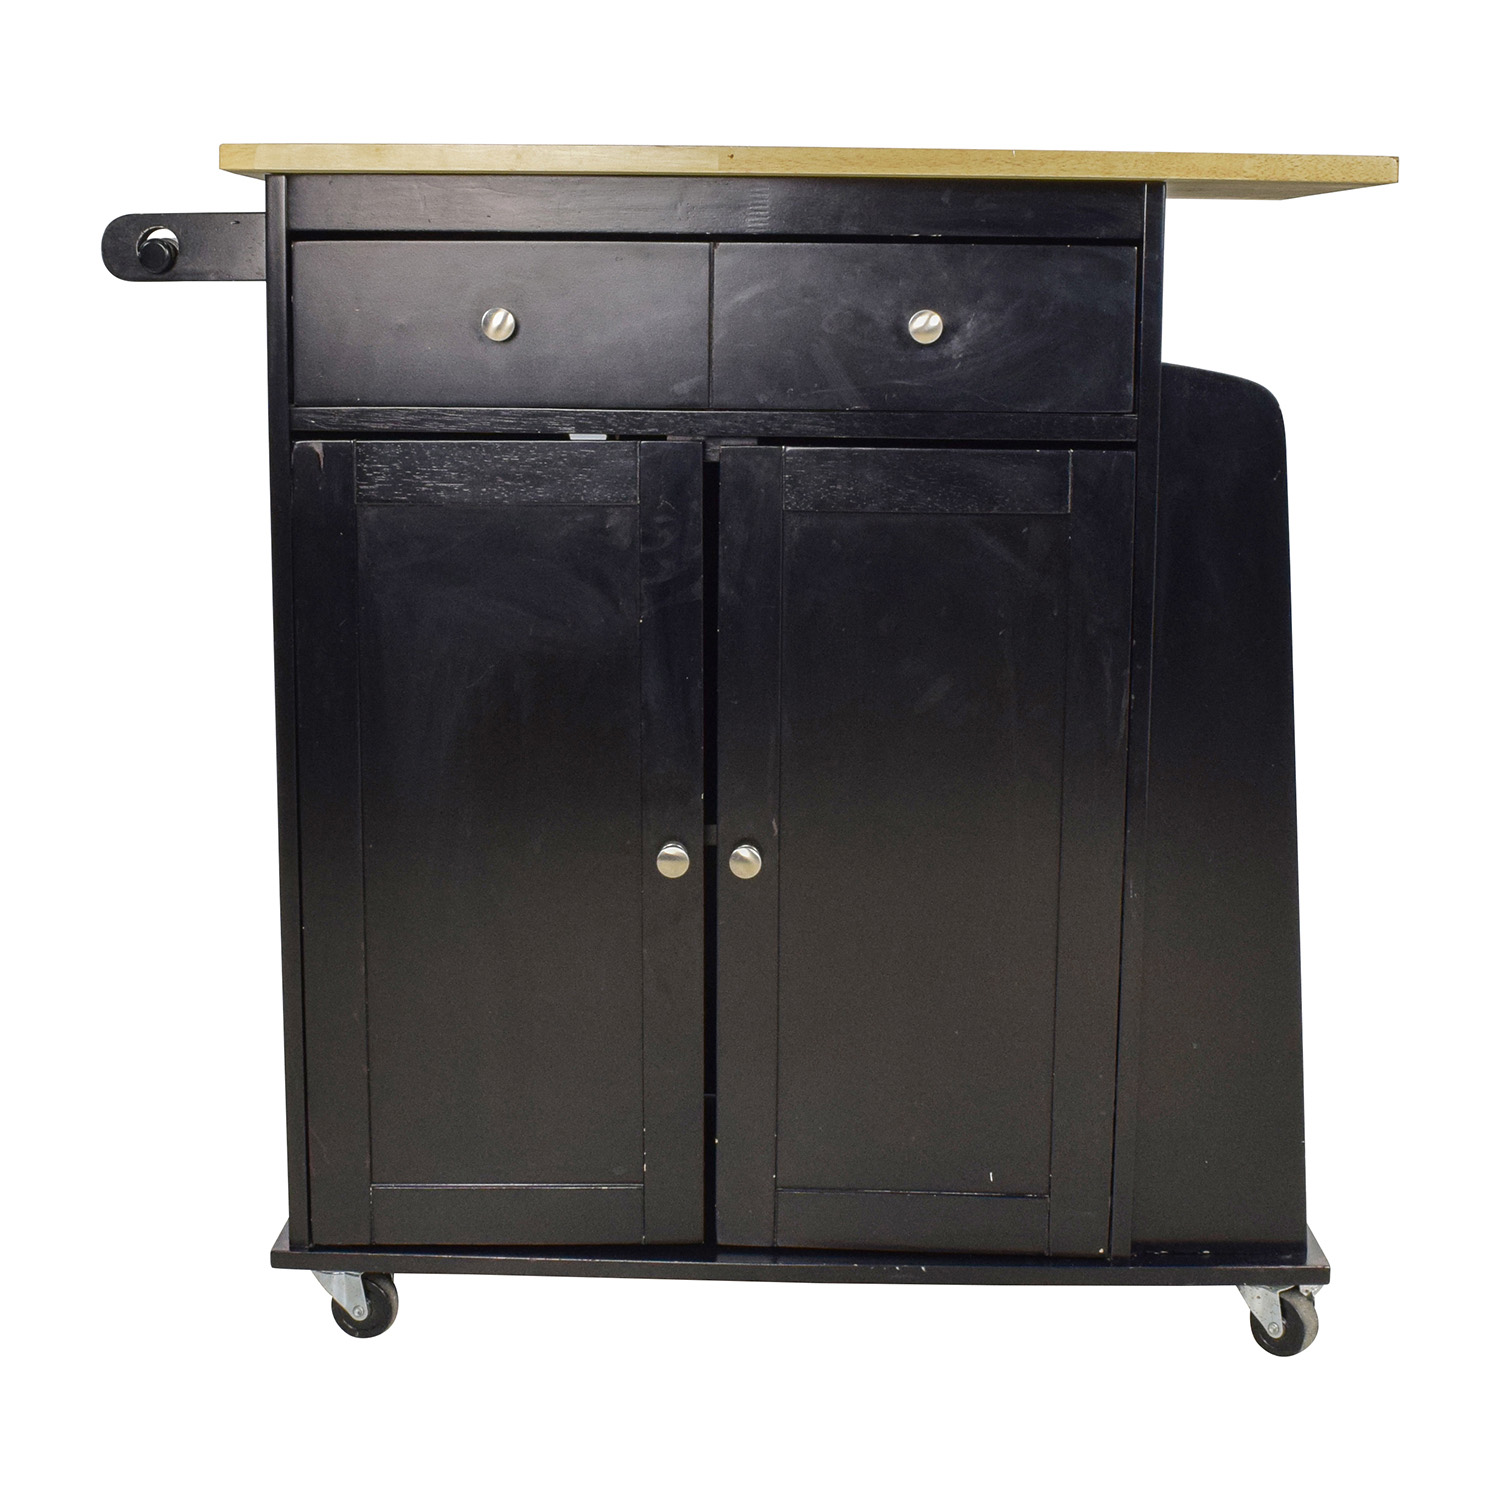 Large Kitchen Butchers Block : 74% OFF - Large Kitchen Cabinet with Butcher Block Top / Tables